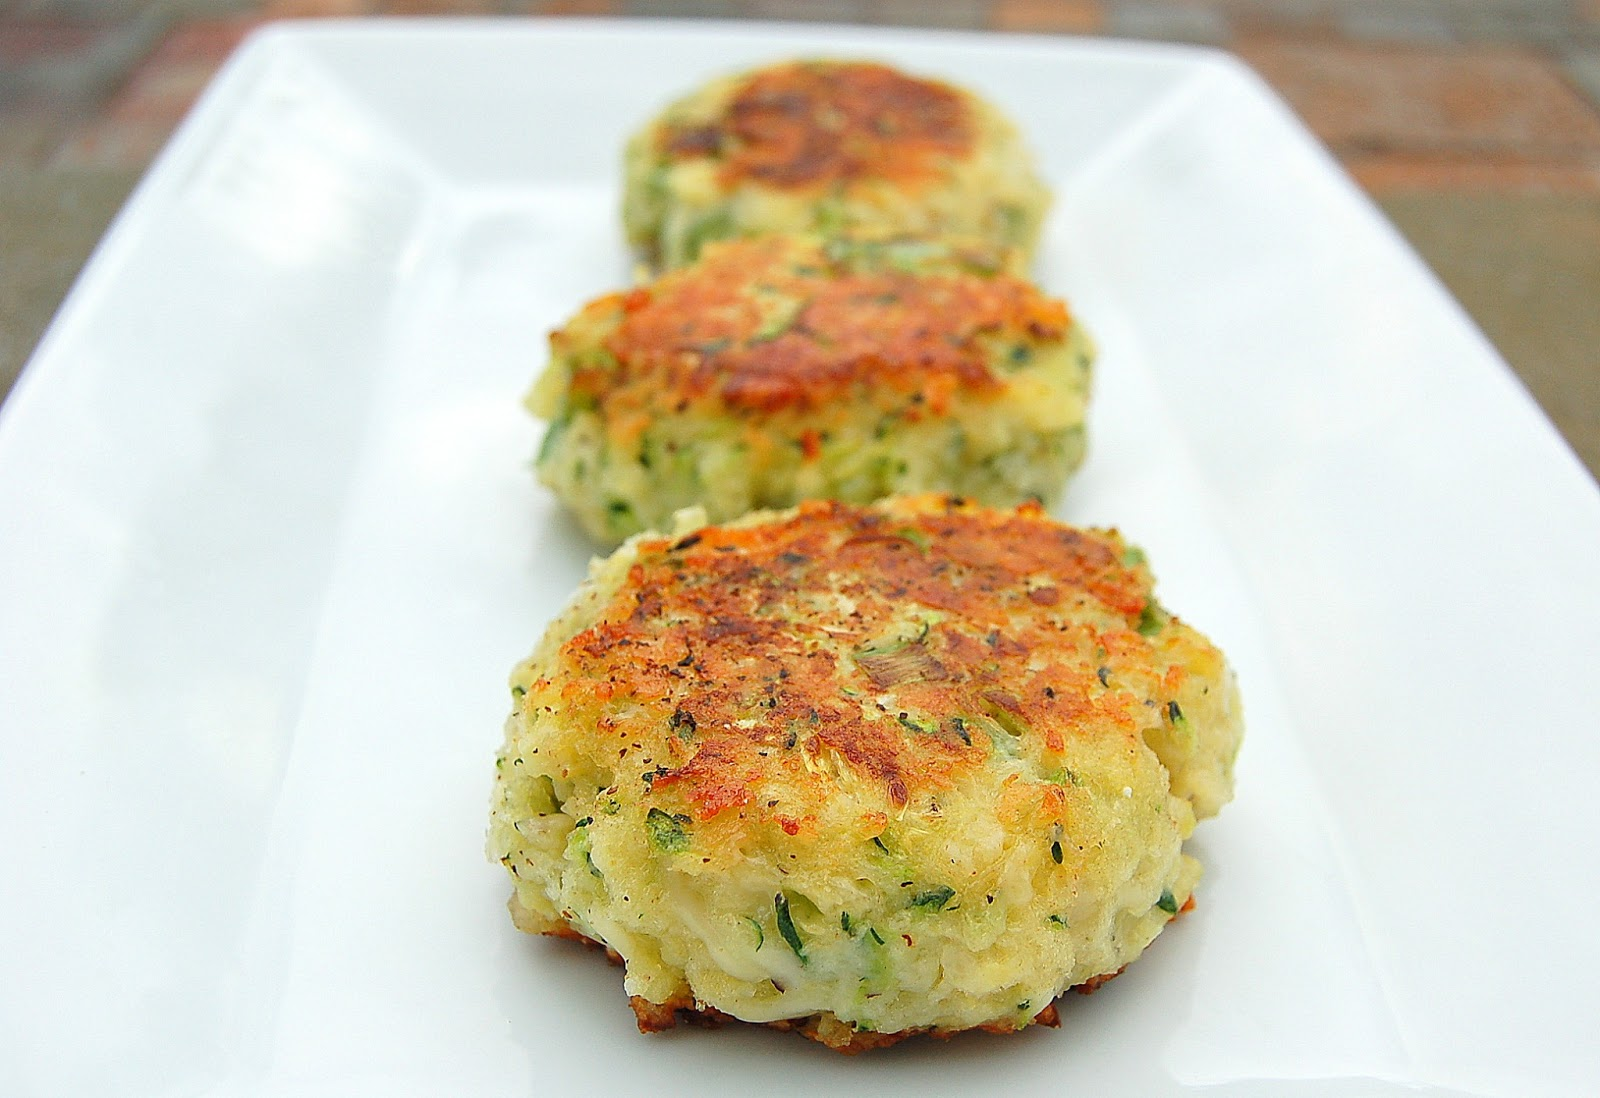 Zucchini Parmesan Cakes - A delicious way to use up all that summer zucchini!